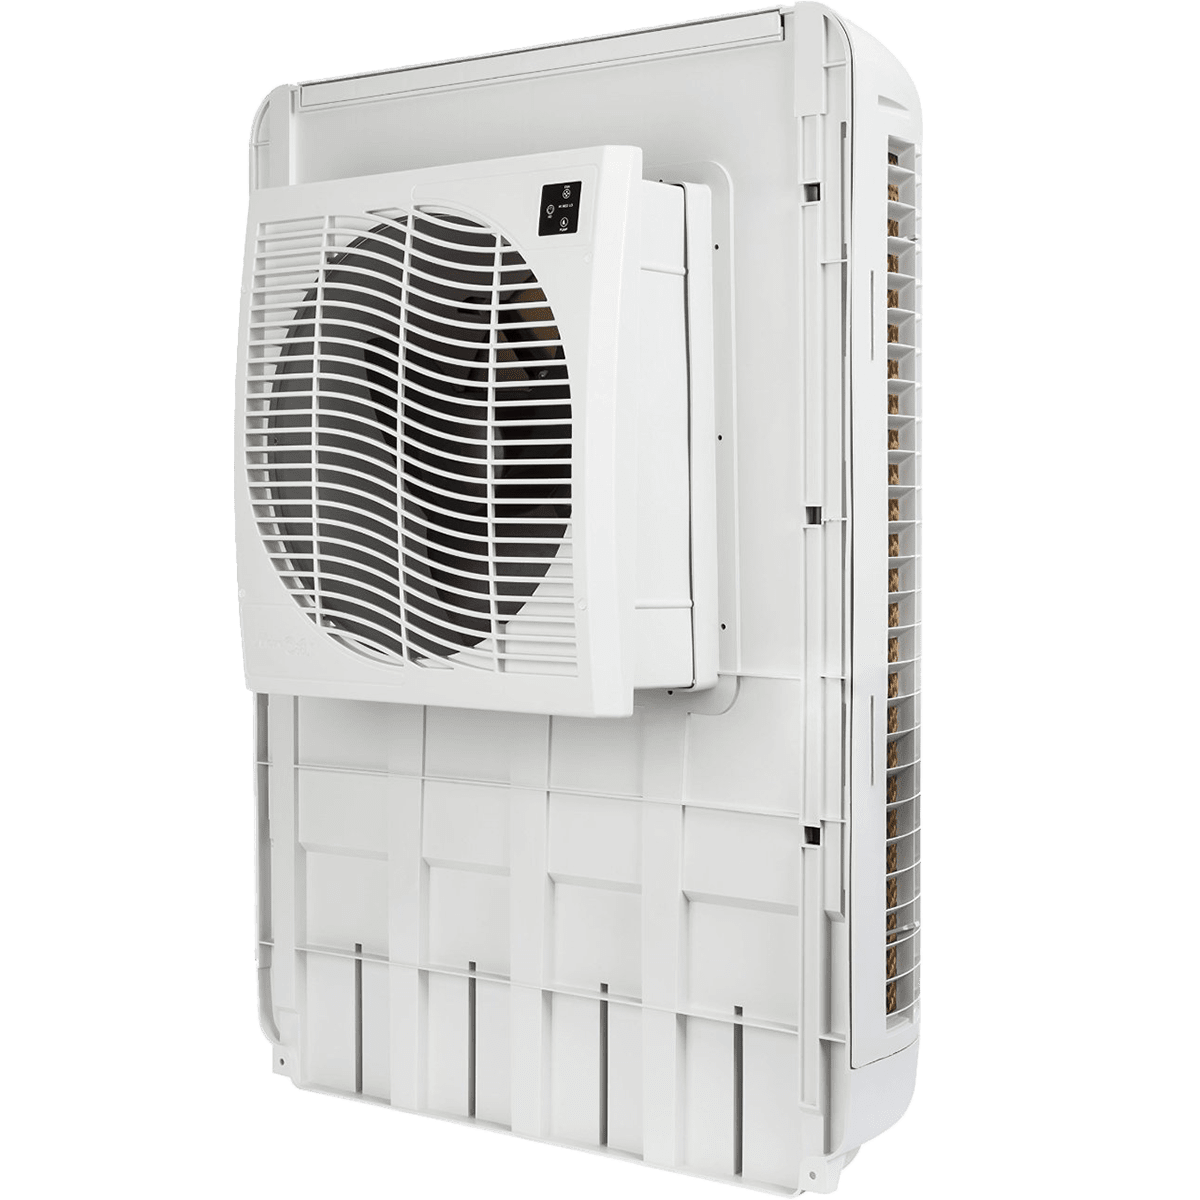 MasterCool MCP44 Slim Profile Window Evaporative Cooler